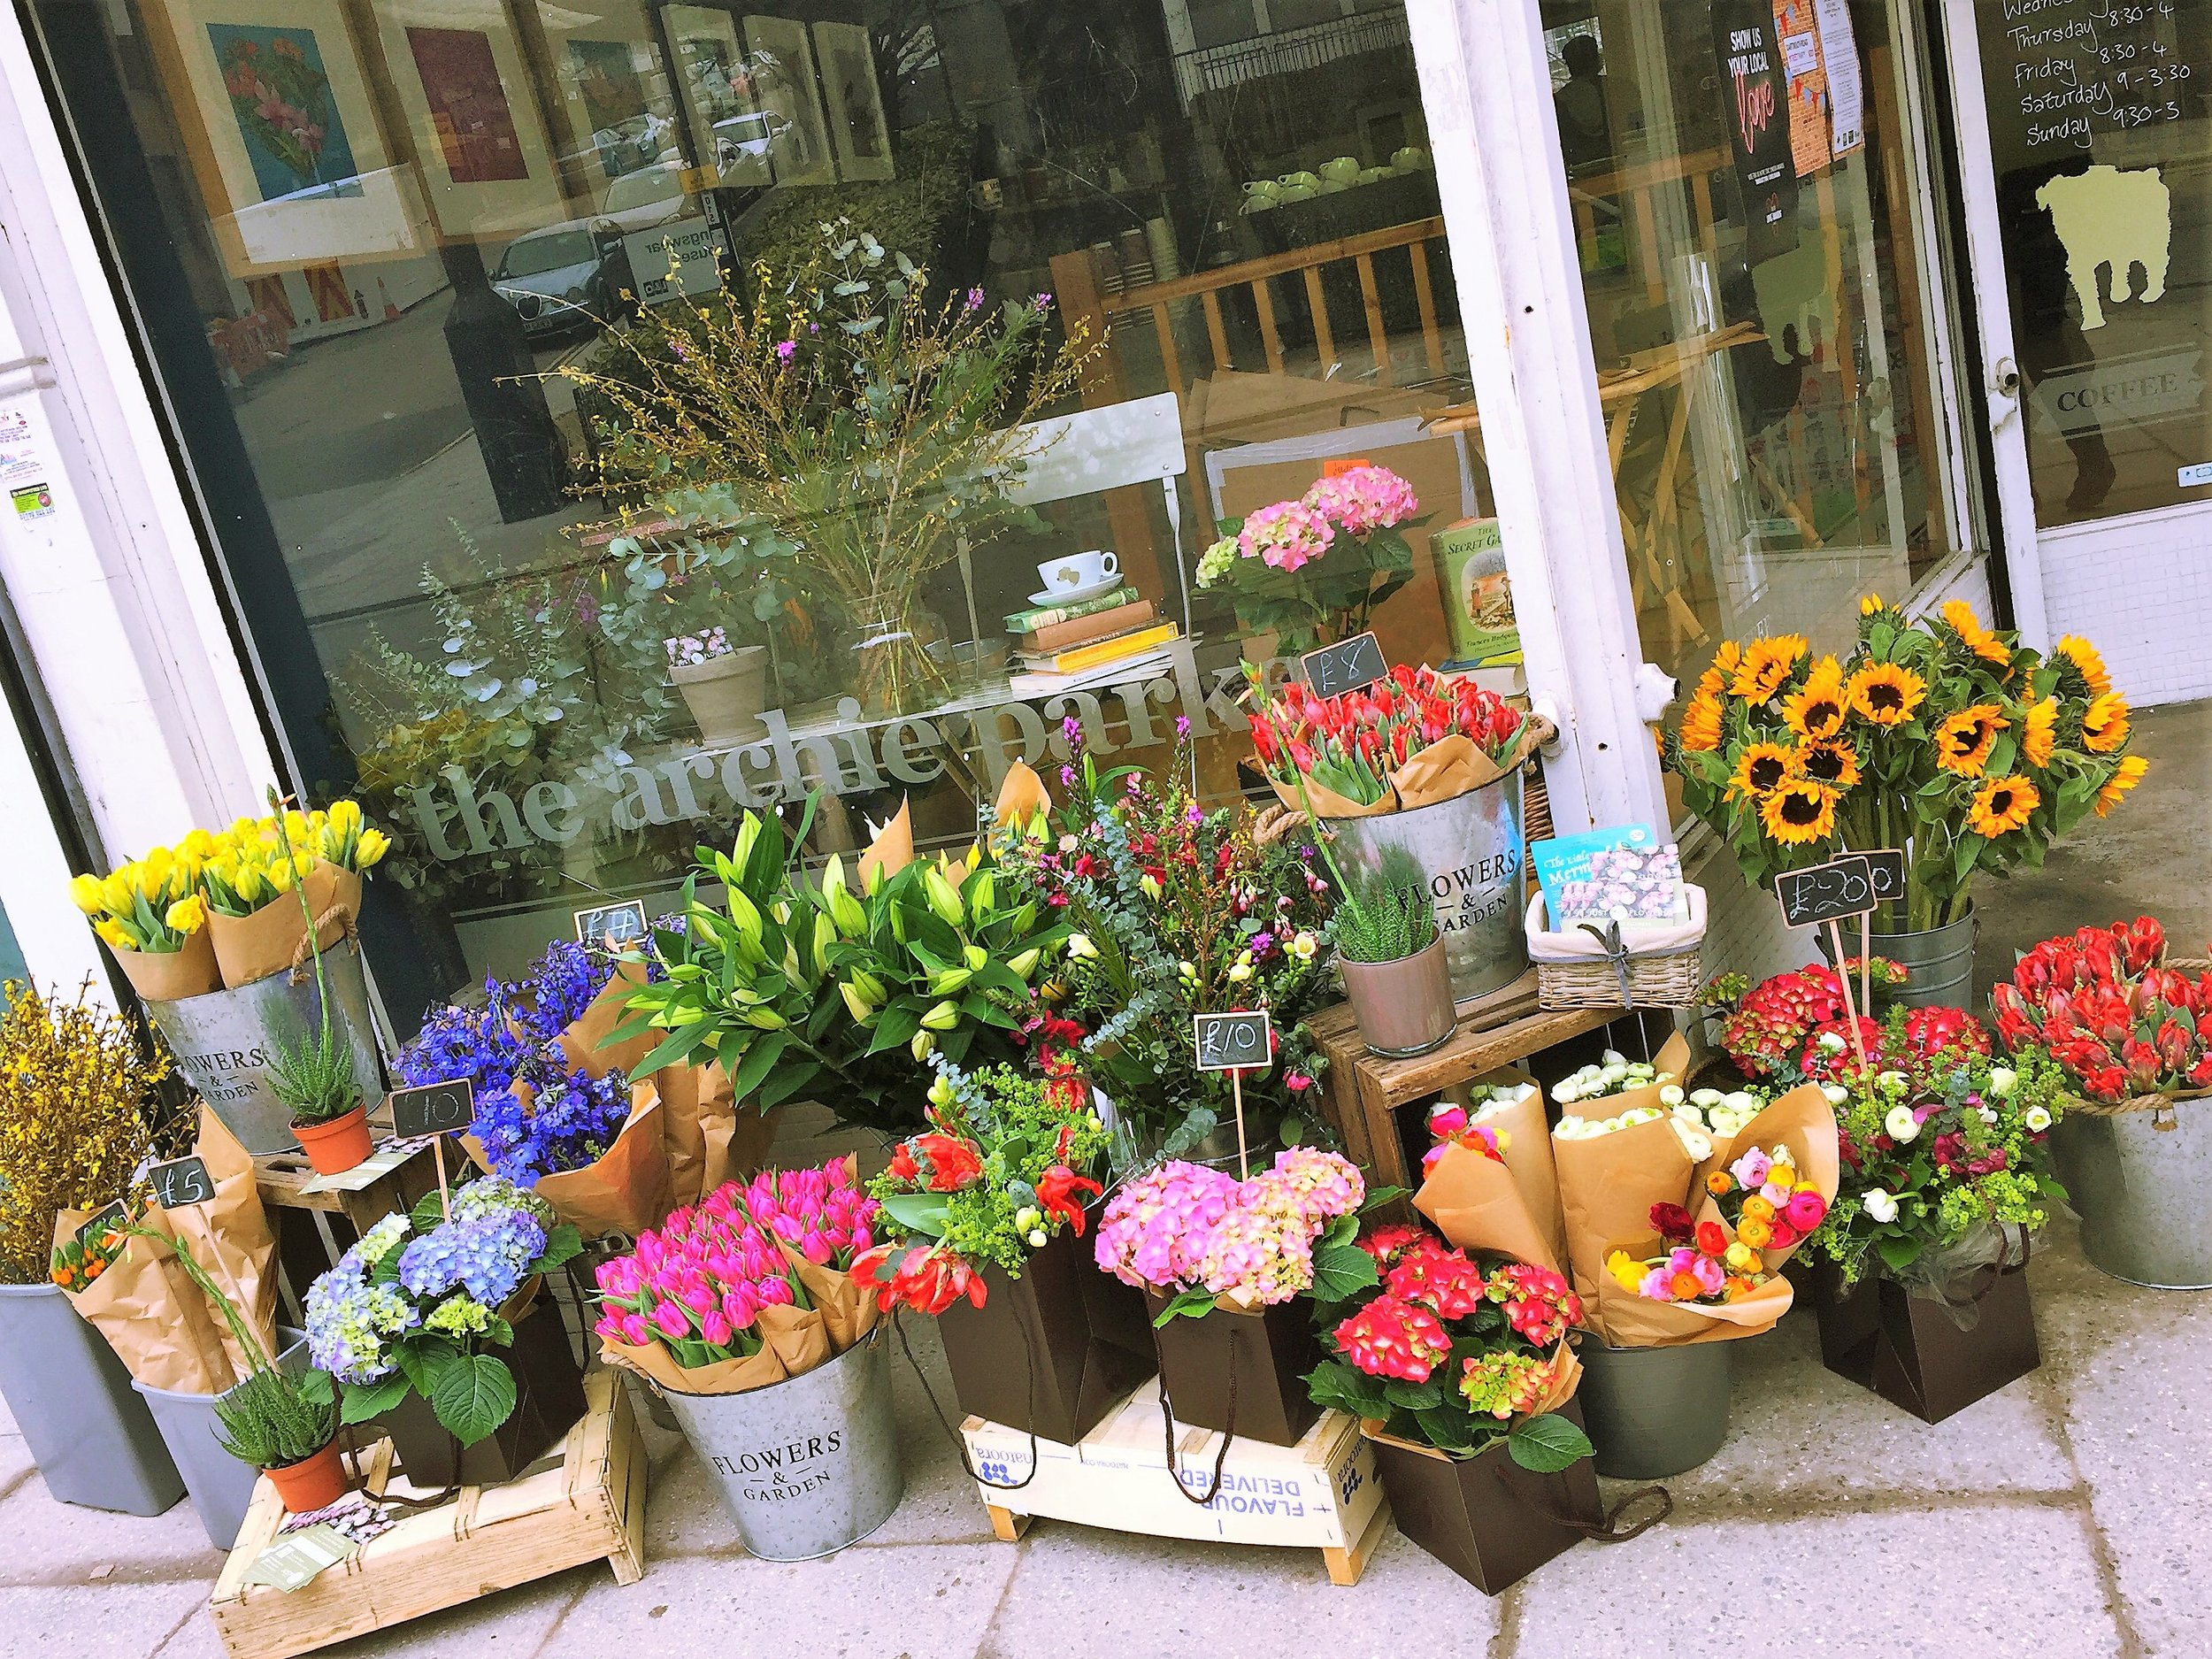 Just So Flowers Floristry pop-up in Forest Hill South East London 2.jpg